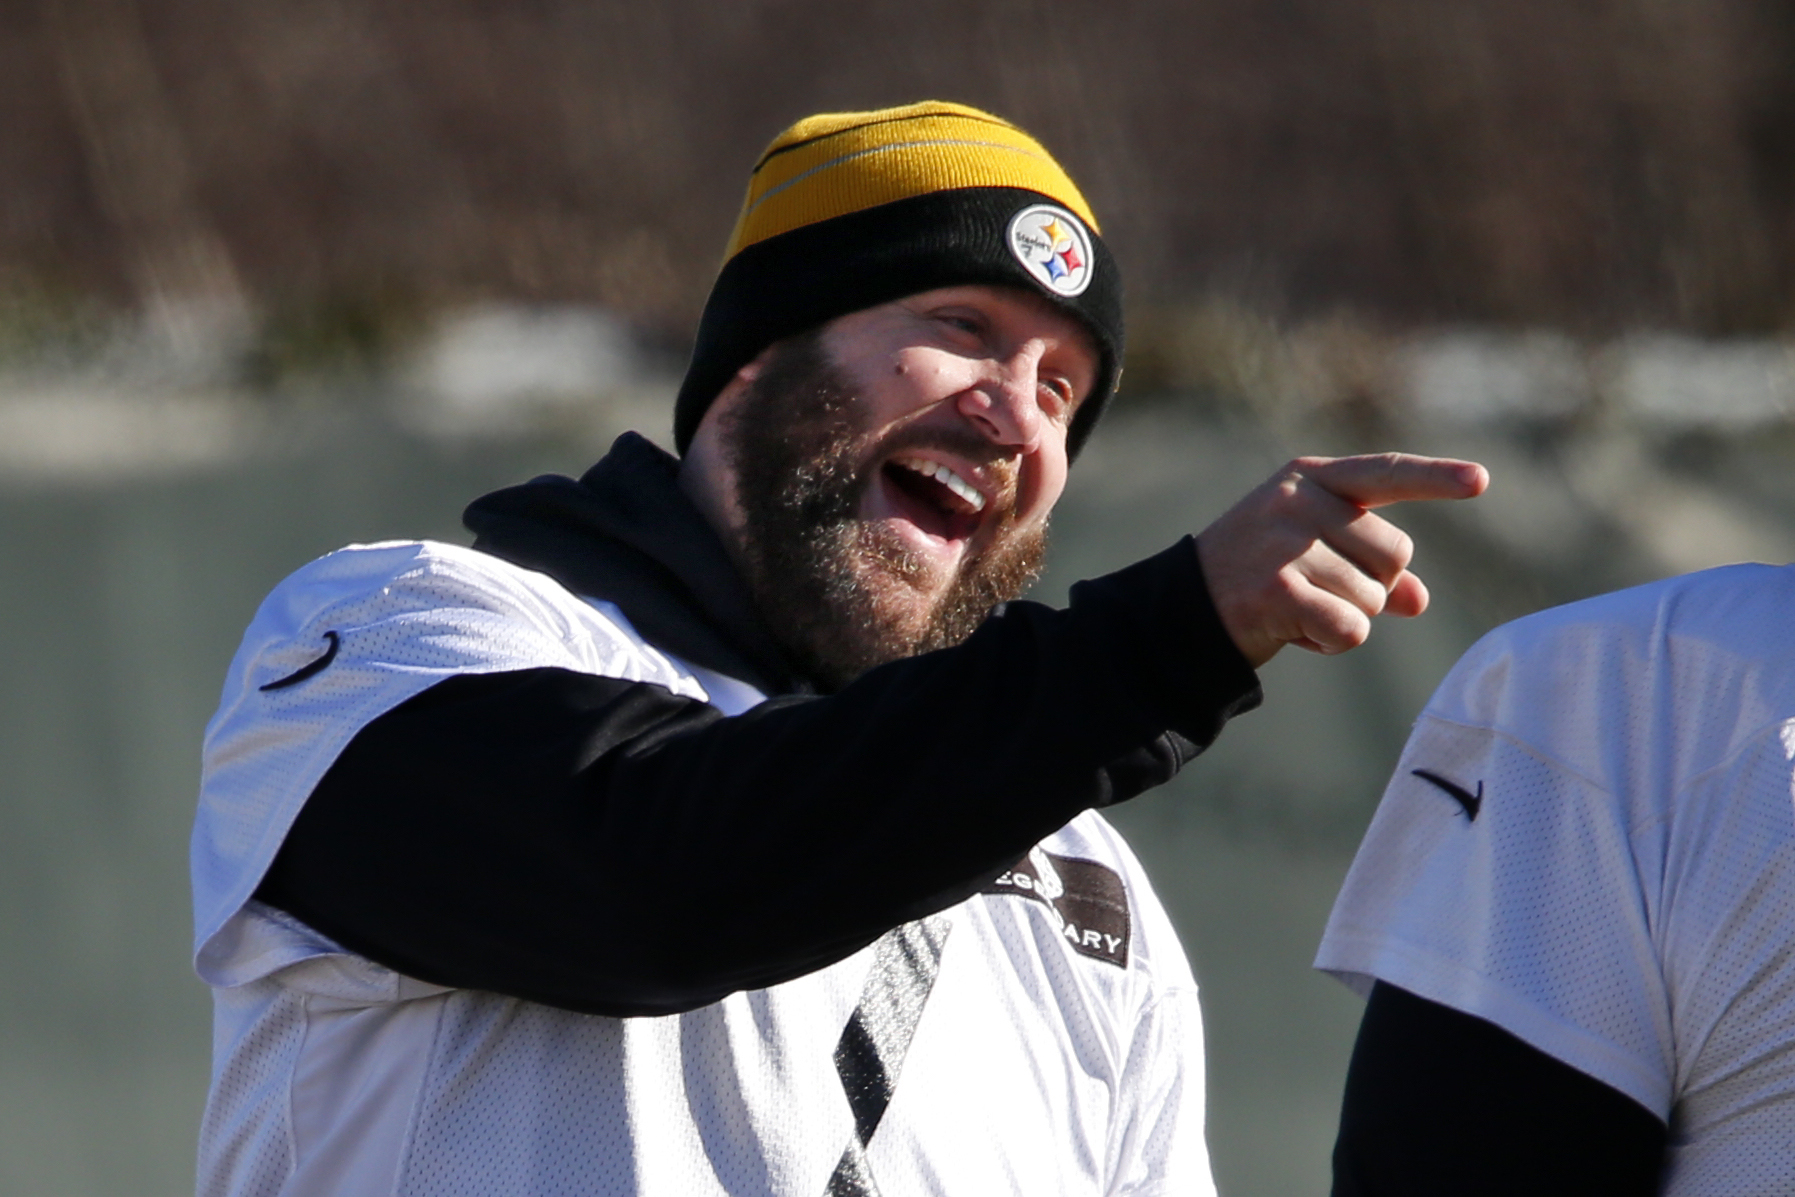 Pittsburgh Steelers quarterback Ben Roethlisberger shares a laugh with a teammate while warming up during an NFL football practice, in Pittsburgh, Wednesday, Jan. 6, 2016. The Steelers face the Cincinnati Bengals in an NFL Wild Card playoff football game